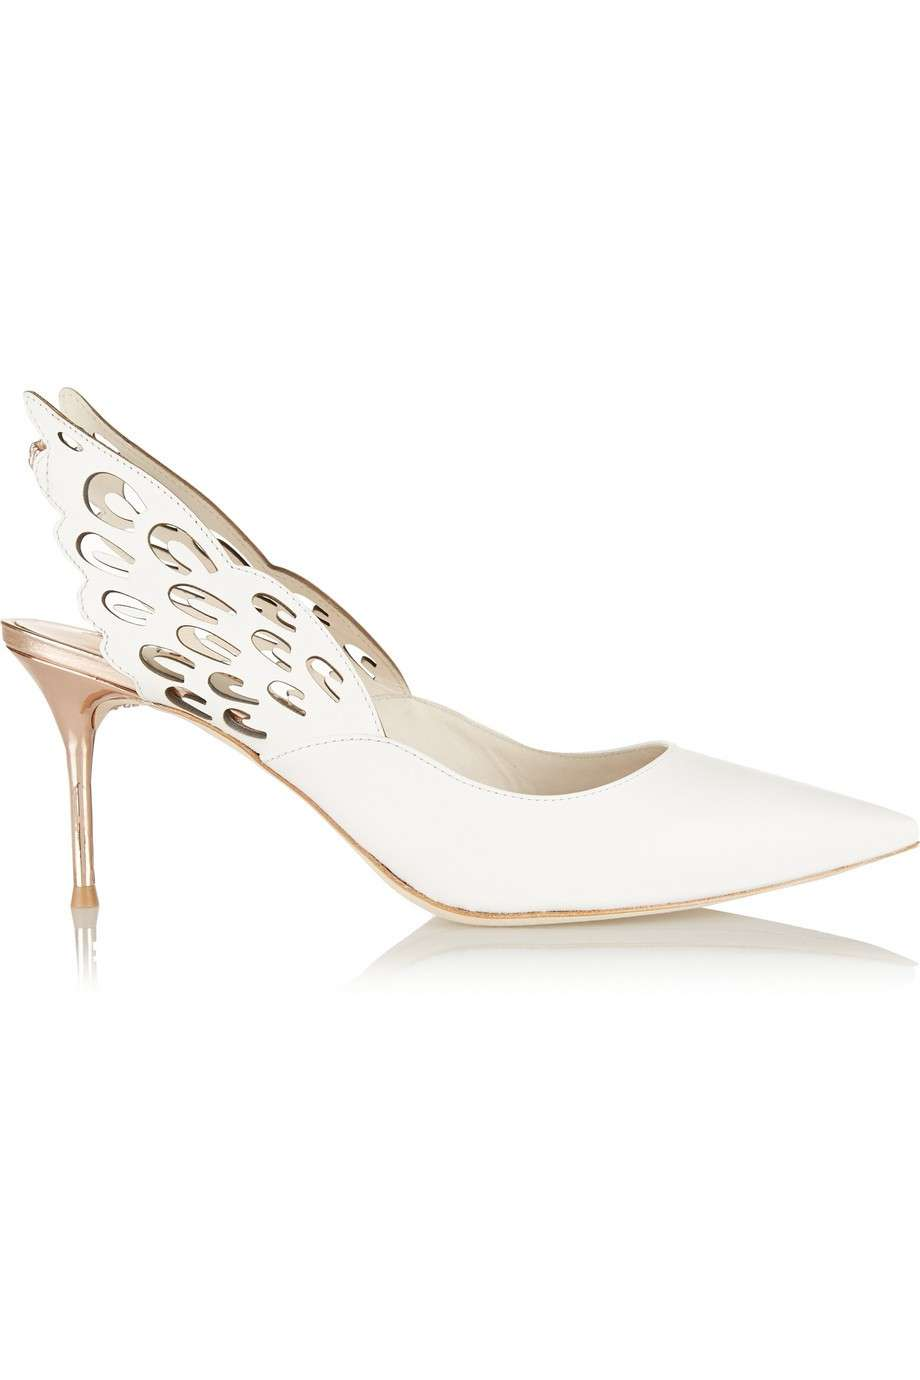 Pumps Sophia Webster